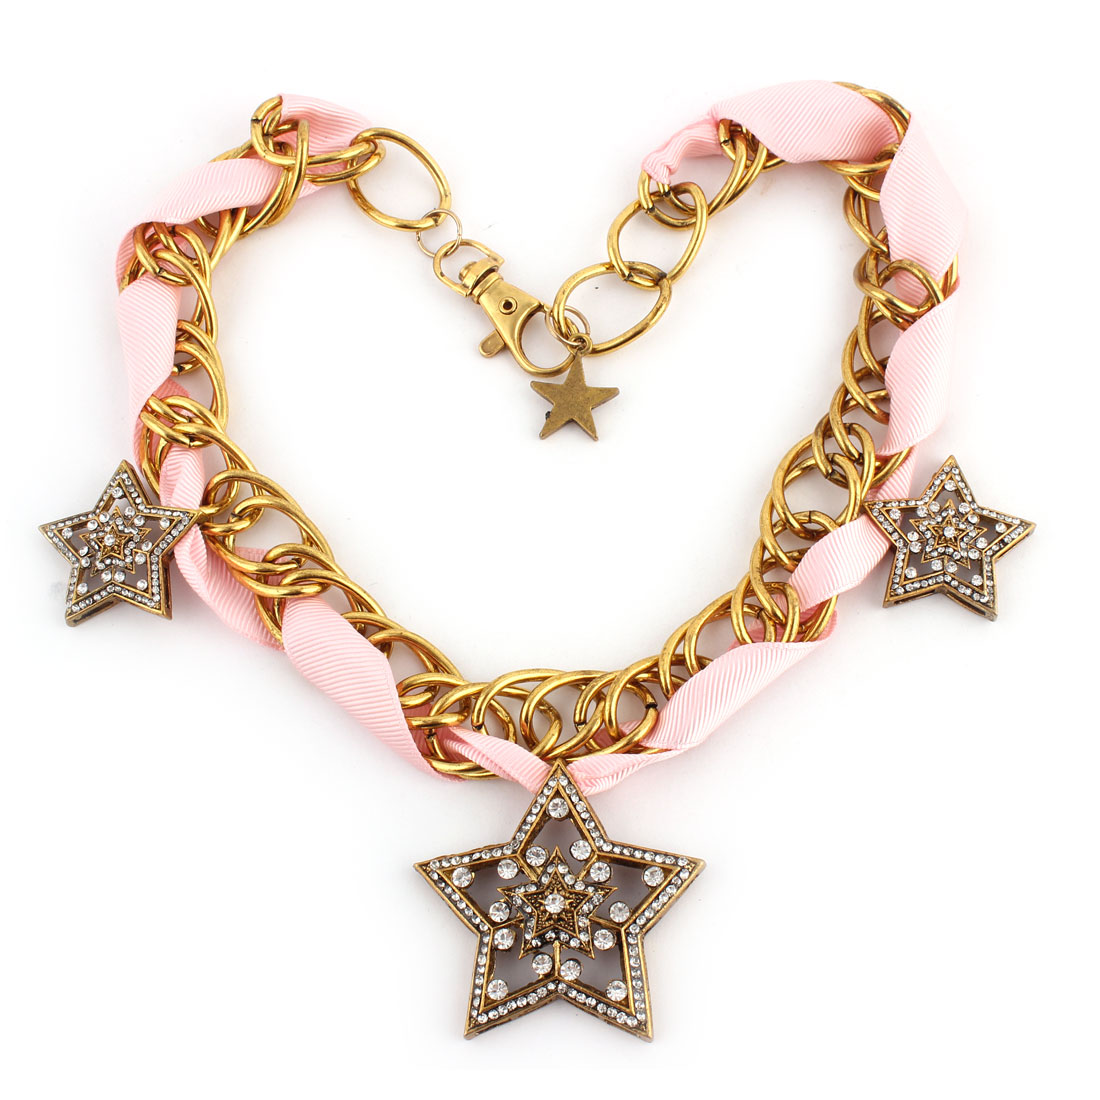 Rhinestone Detailing Star Pendant Chain Necklace Banquet Clothes Ornament